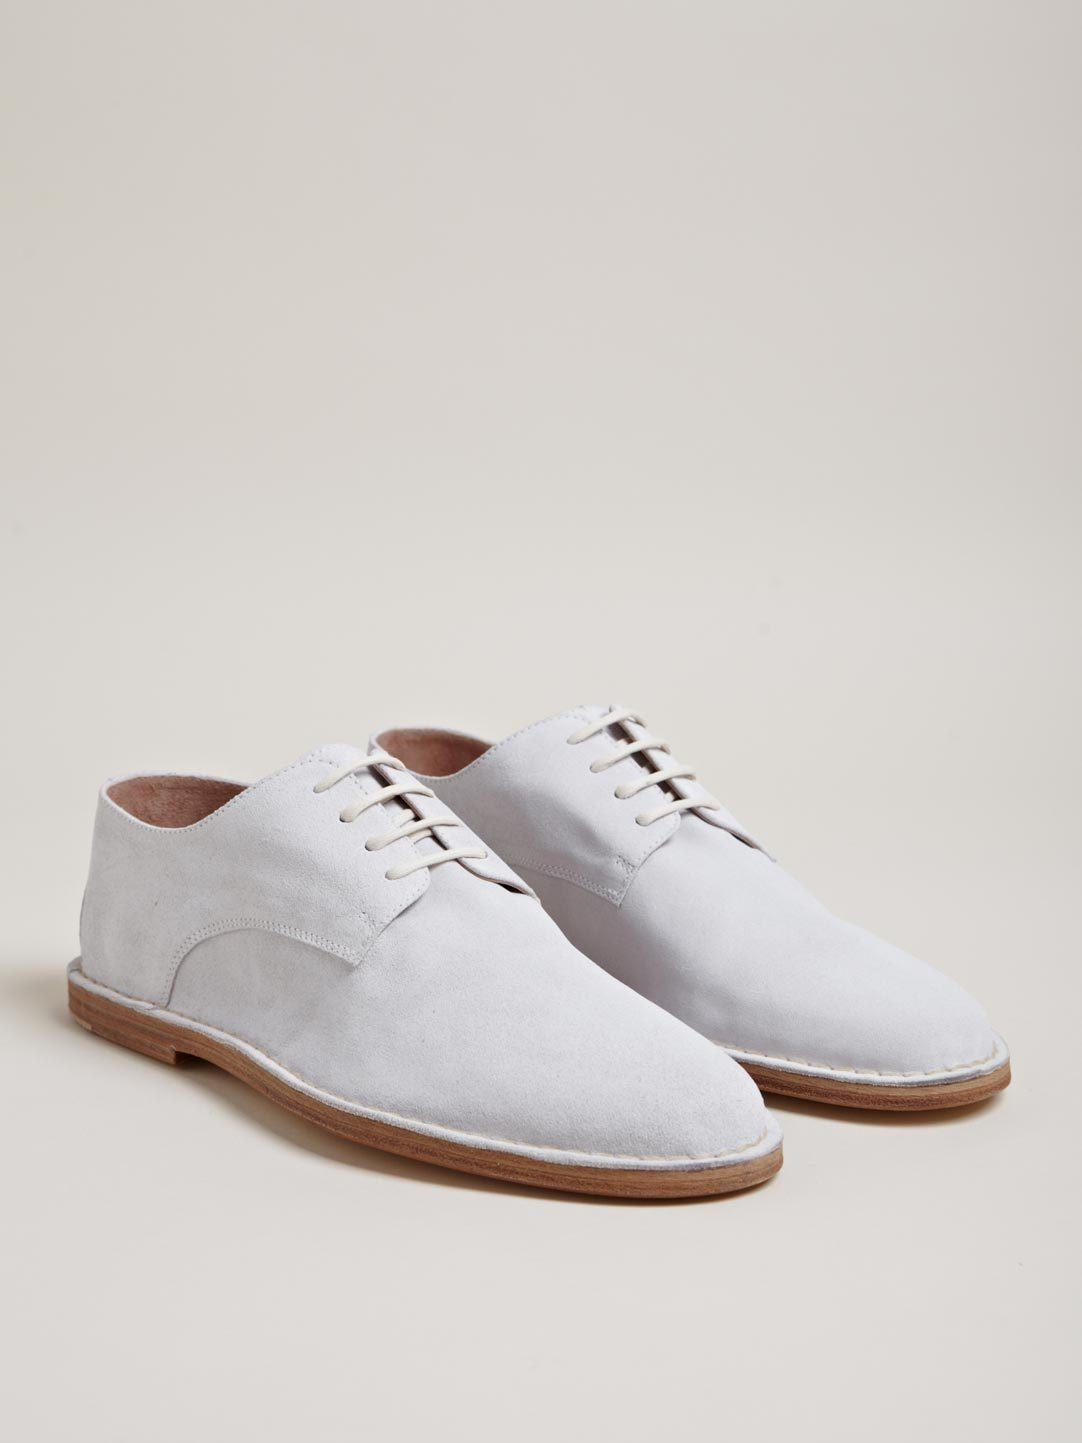 wantering:  Ann Demeulemeester Suede Leather Derby Shoes